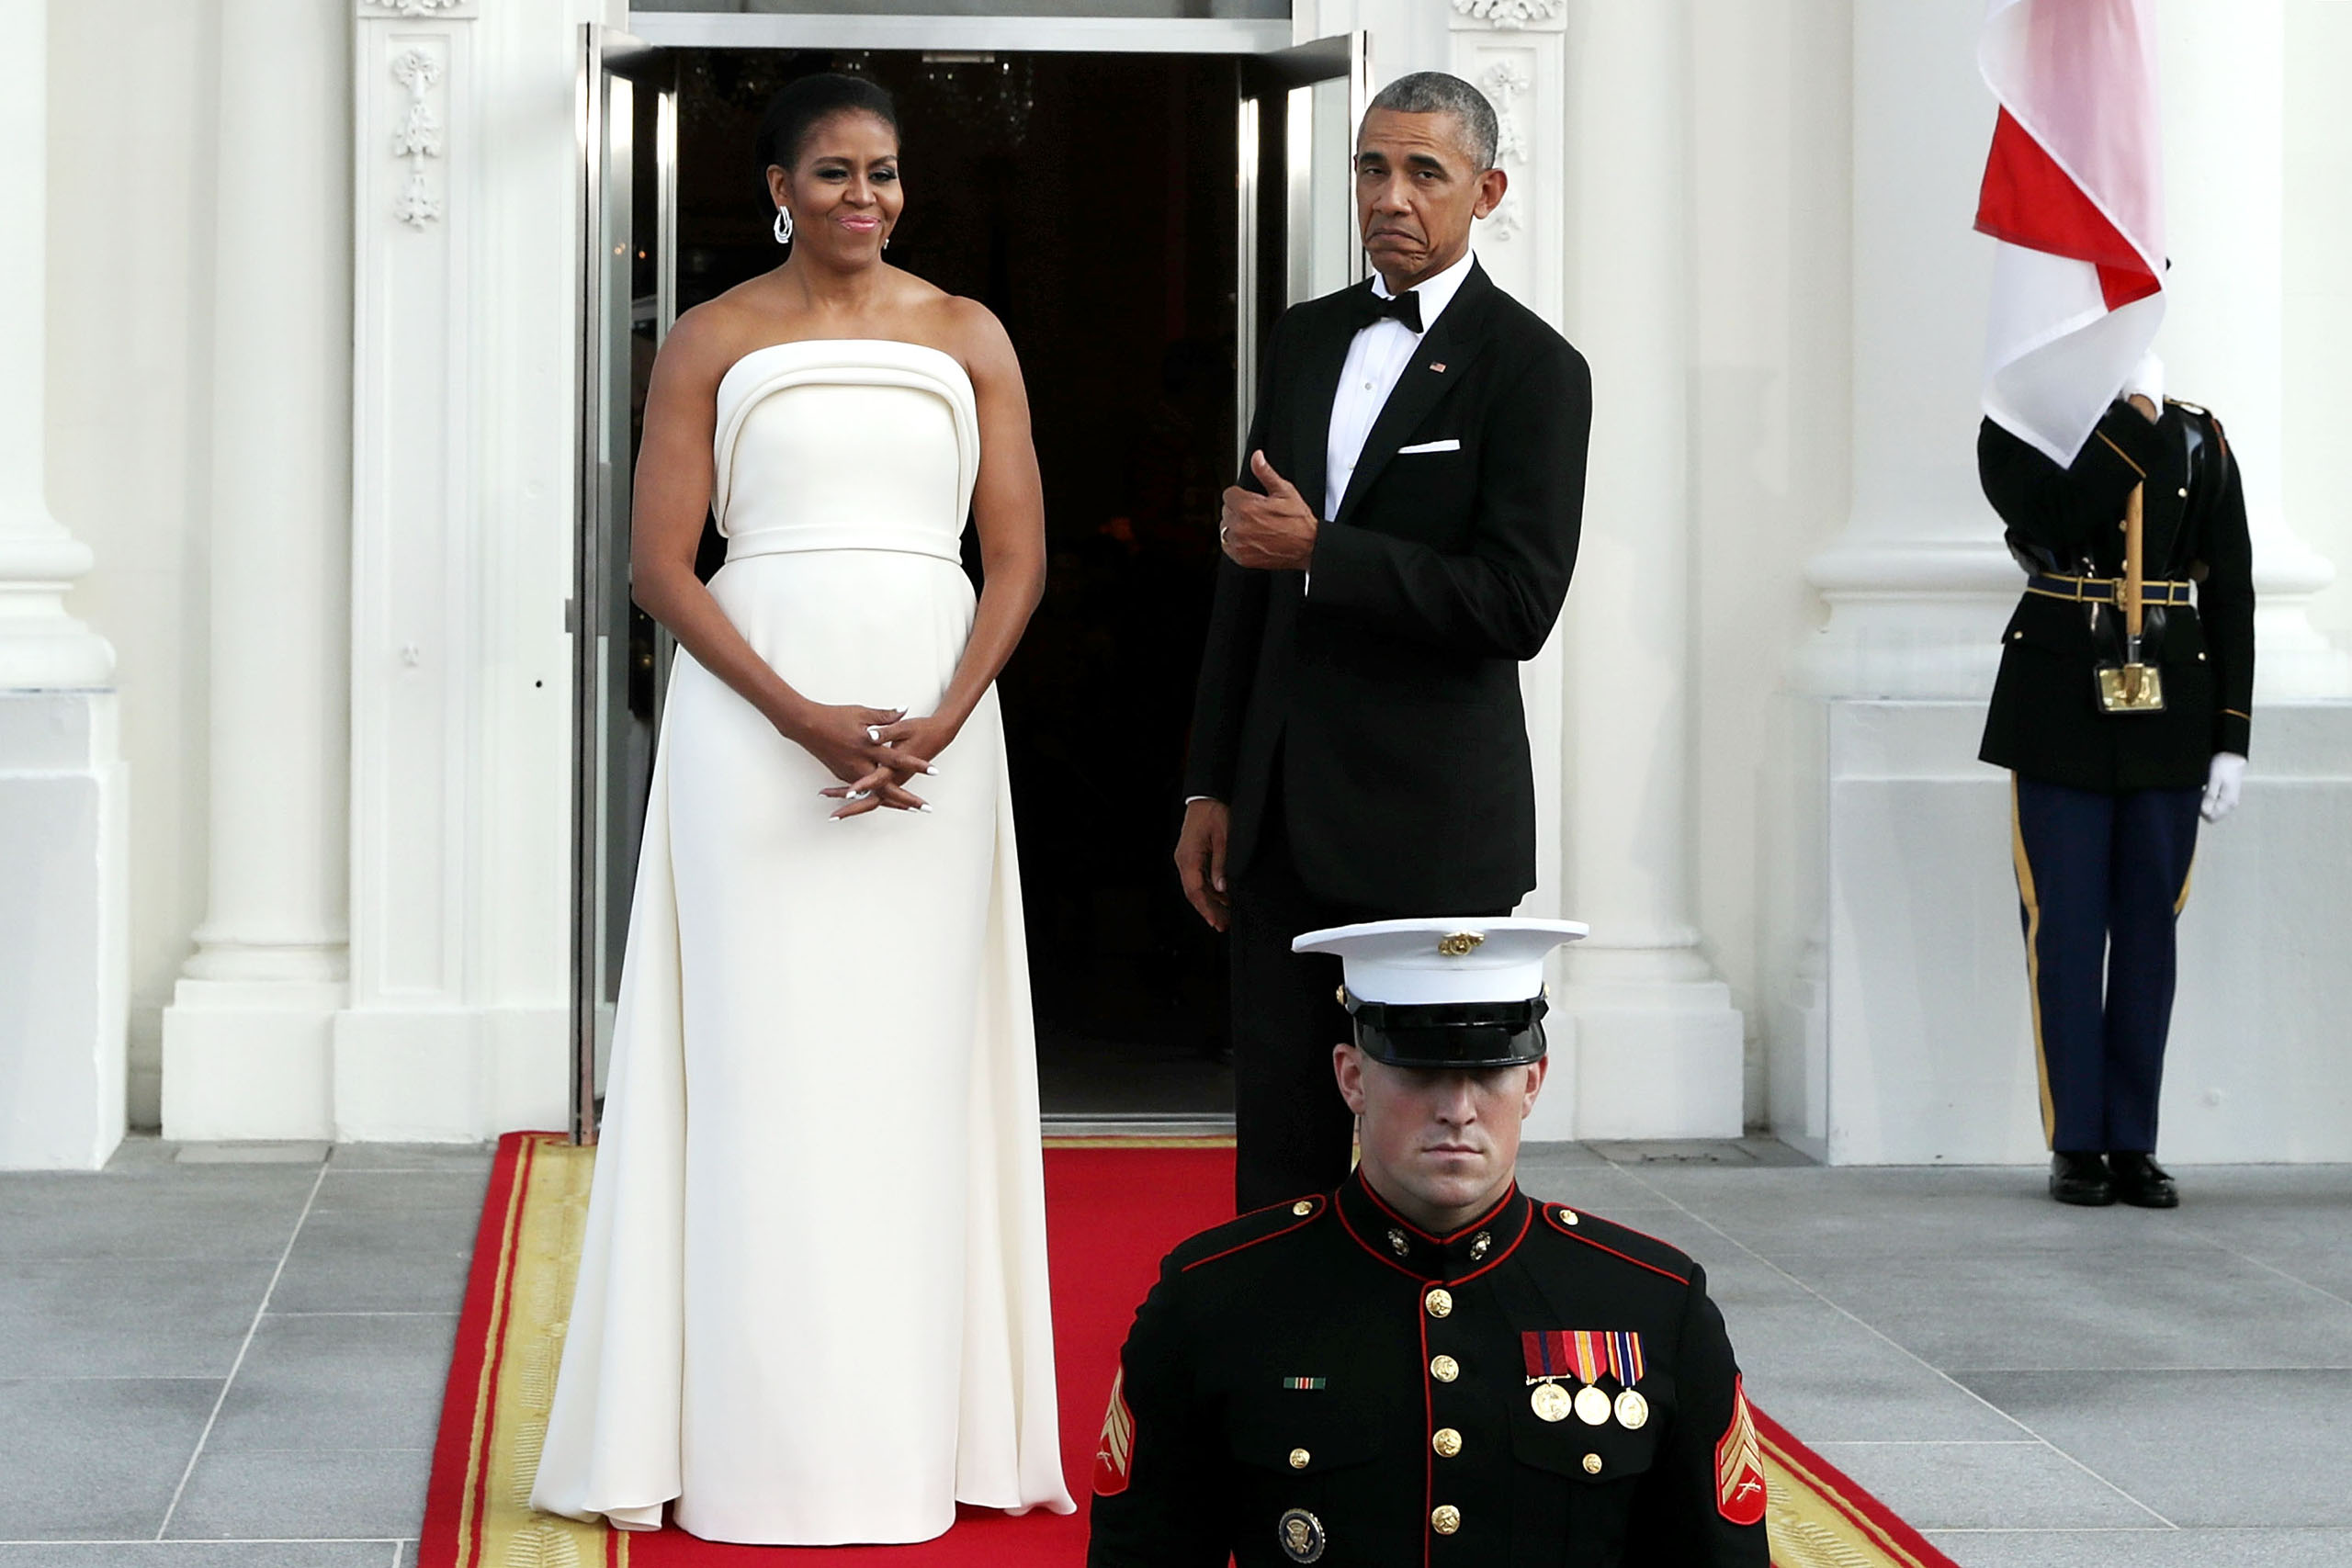 Michelle Obama and Barack Obama wait for the arrival of  Prime Minister Lee Hsien Loong of Singapore and his wife Ho Ching on the North Portico of the White House in Washington, D.C., on Aug. 2, 2016.